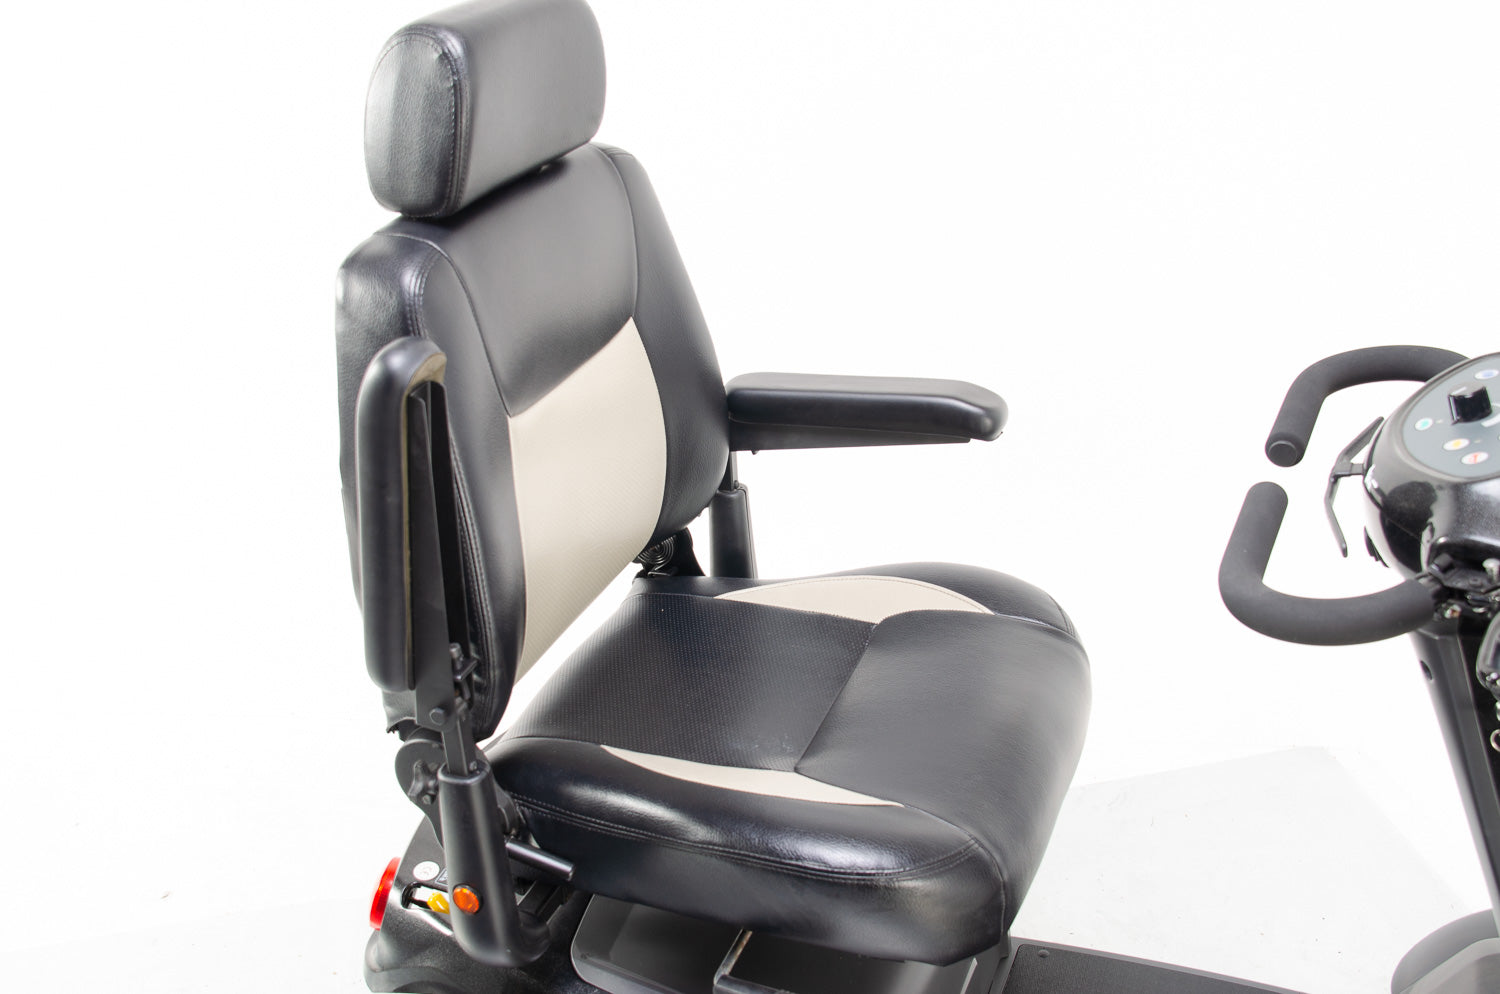 2016 Van Os Galaxy II 2 8mph Large Comfort Class 3 Mobility Scooter in Black